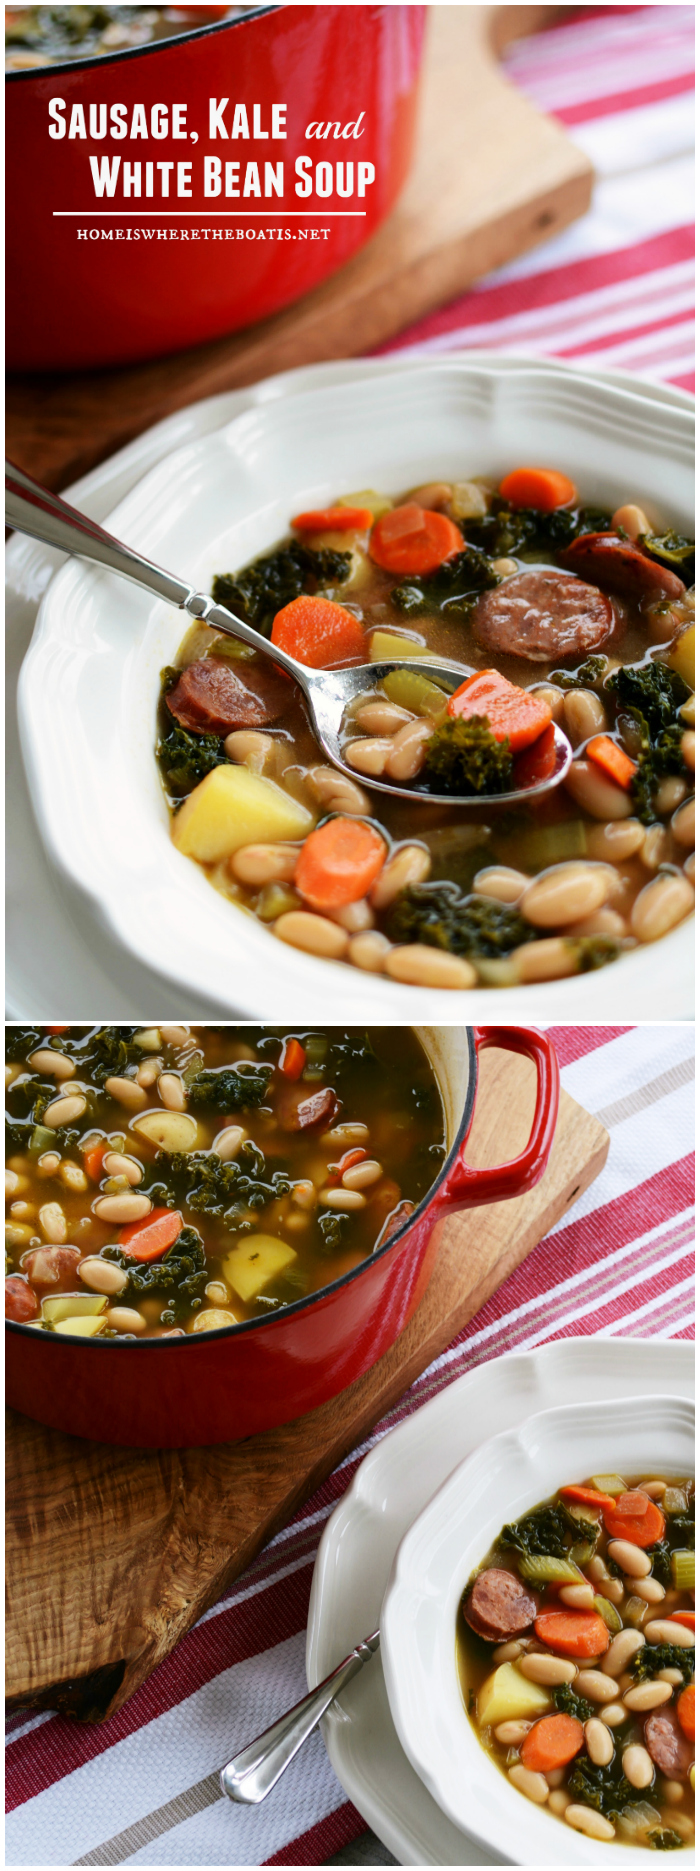 A Hearty Winter Soup: Sausage, Kale and White Bean Soup | ©homeiswheretheboatis.net #soup #recipes